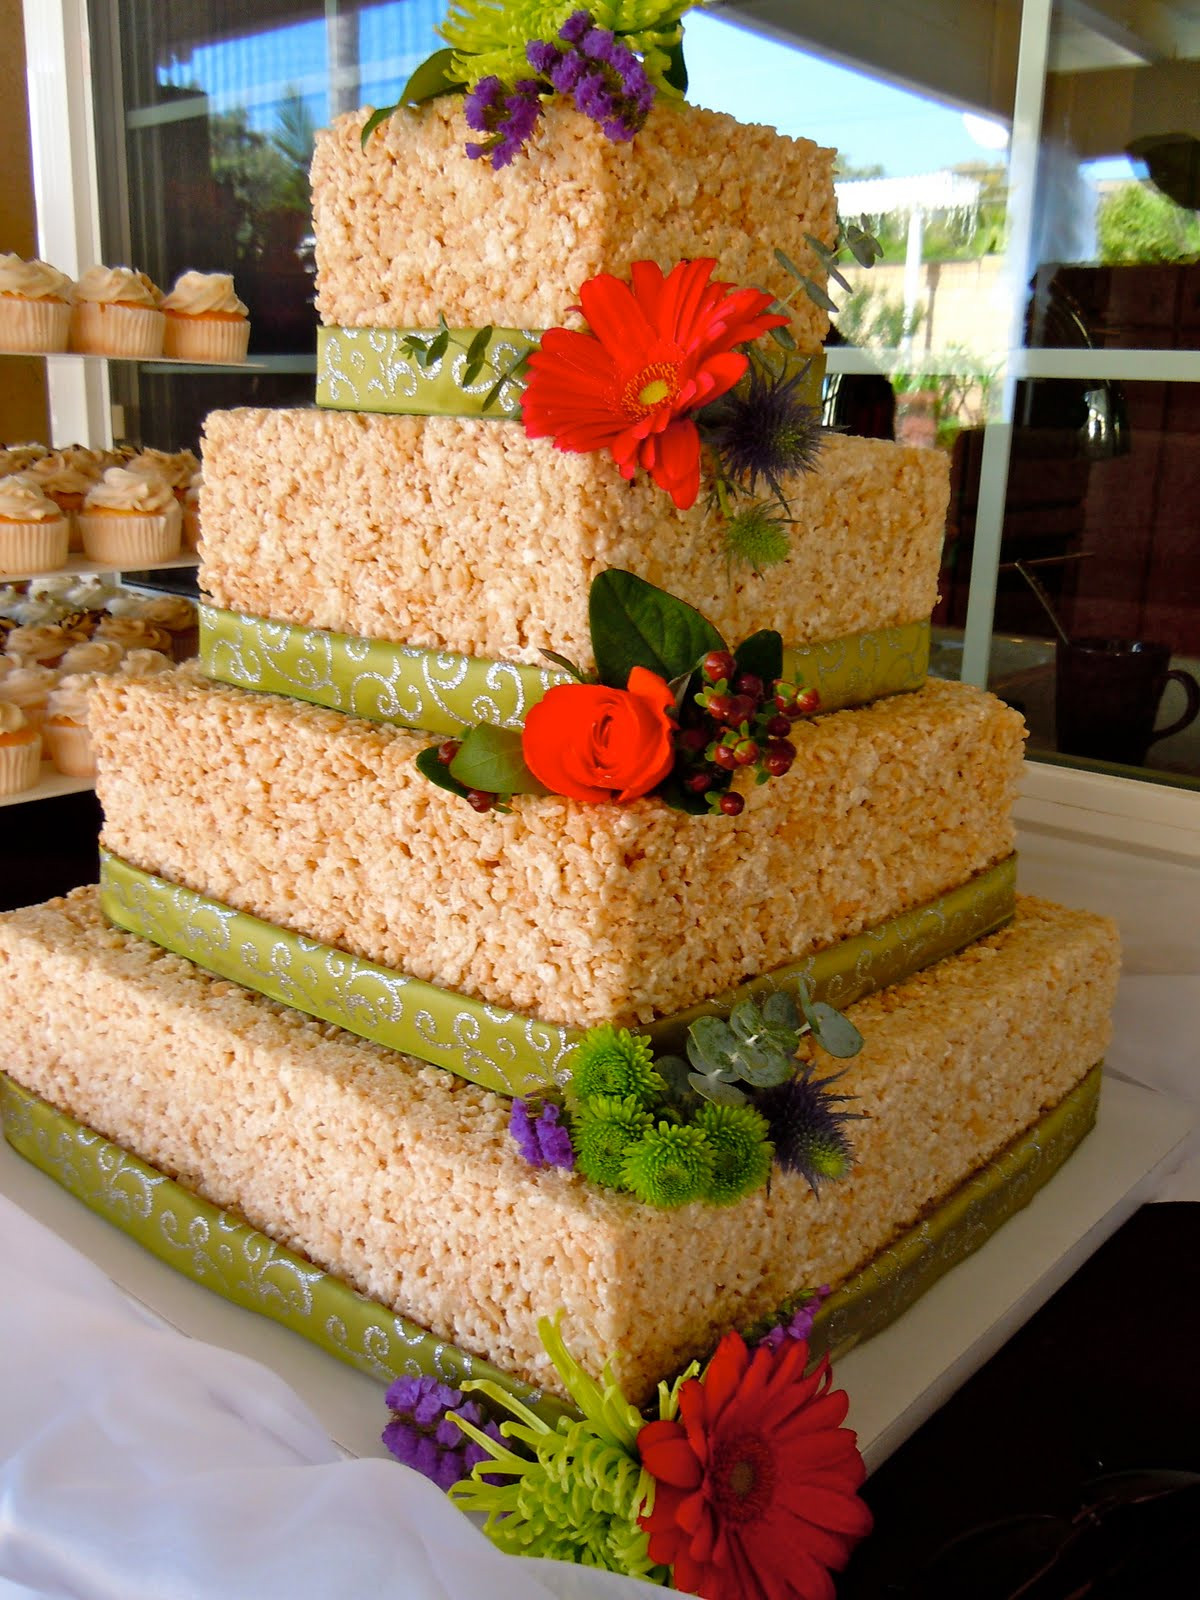 Rice Krispie Wedding Cakes  Carla Buchanan Designs Rice Krispie Wedding Cake My